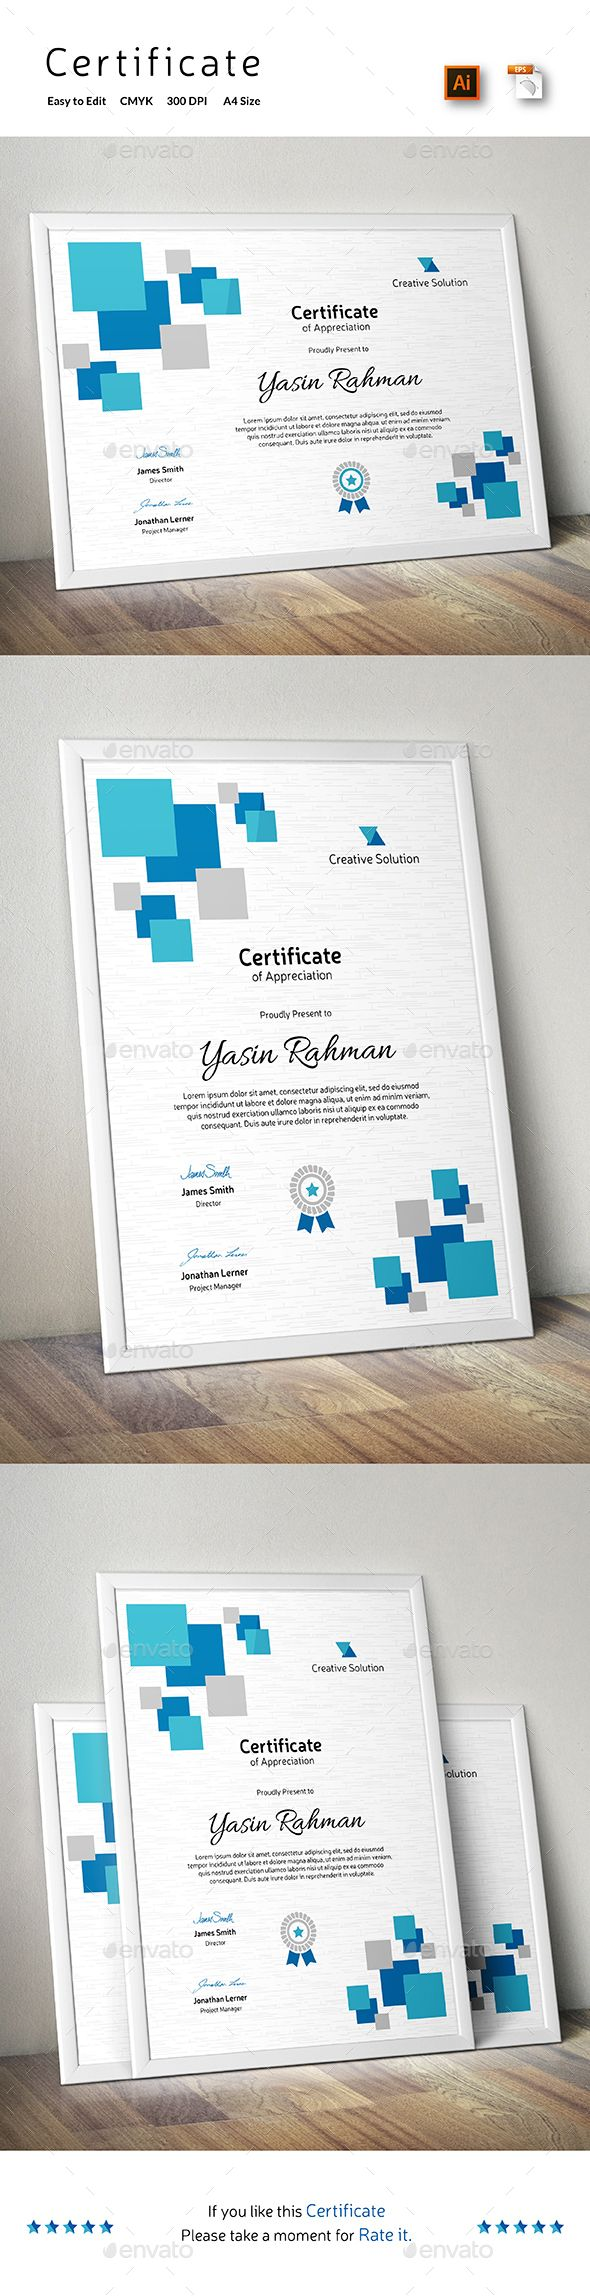 Certificate Template Vector EPS, AI. Download here: http://graphicriver.net/item/certificate/14407226?ref=ksioks